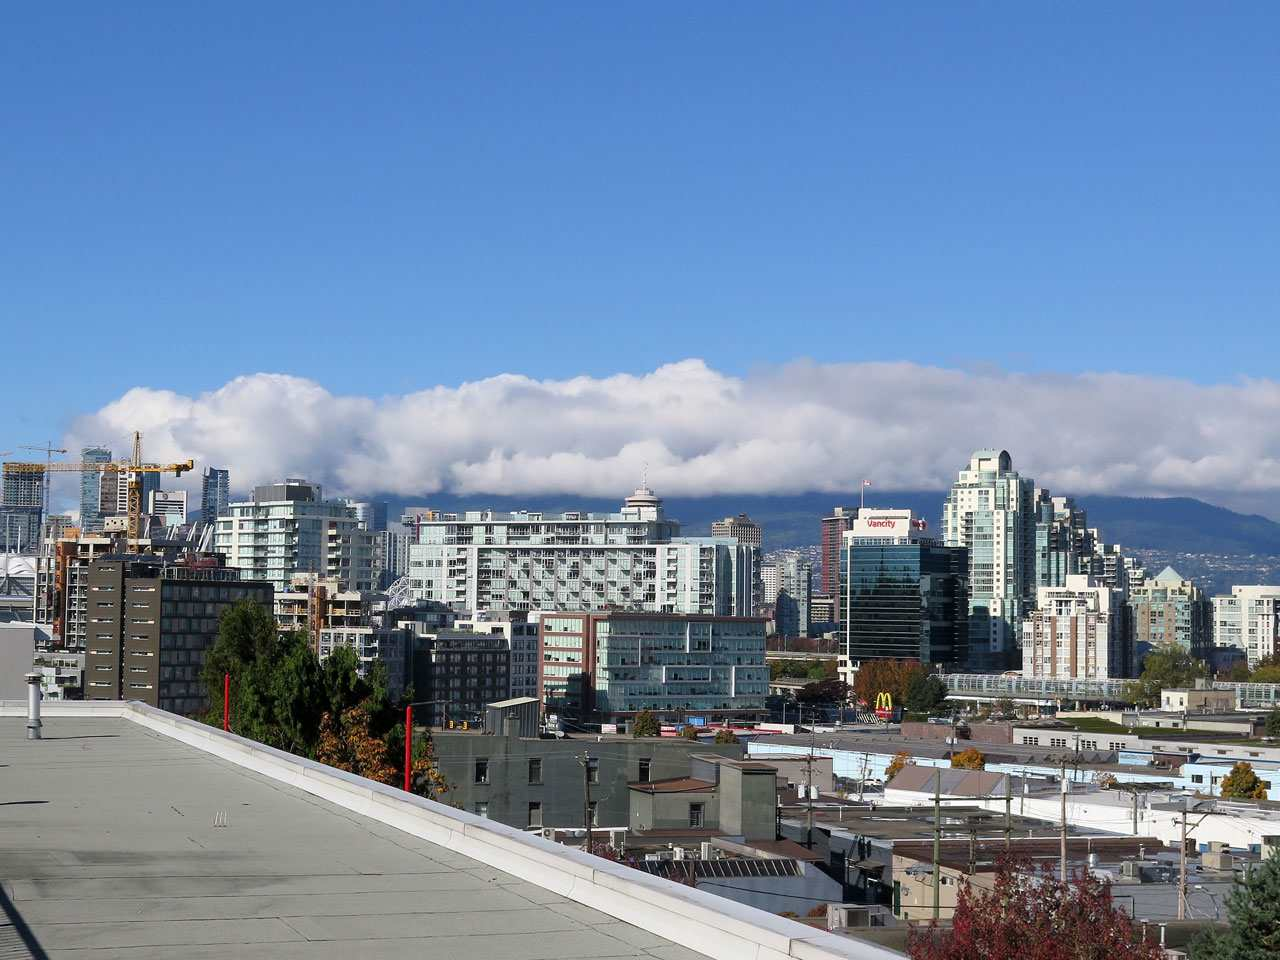 Photo 3: 214 350 E 2ND AVENUE in Vancouver: Mount Pleasant VE Condo for sale (Vancouver East)  : MLS(r) # R2014150